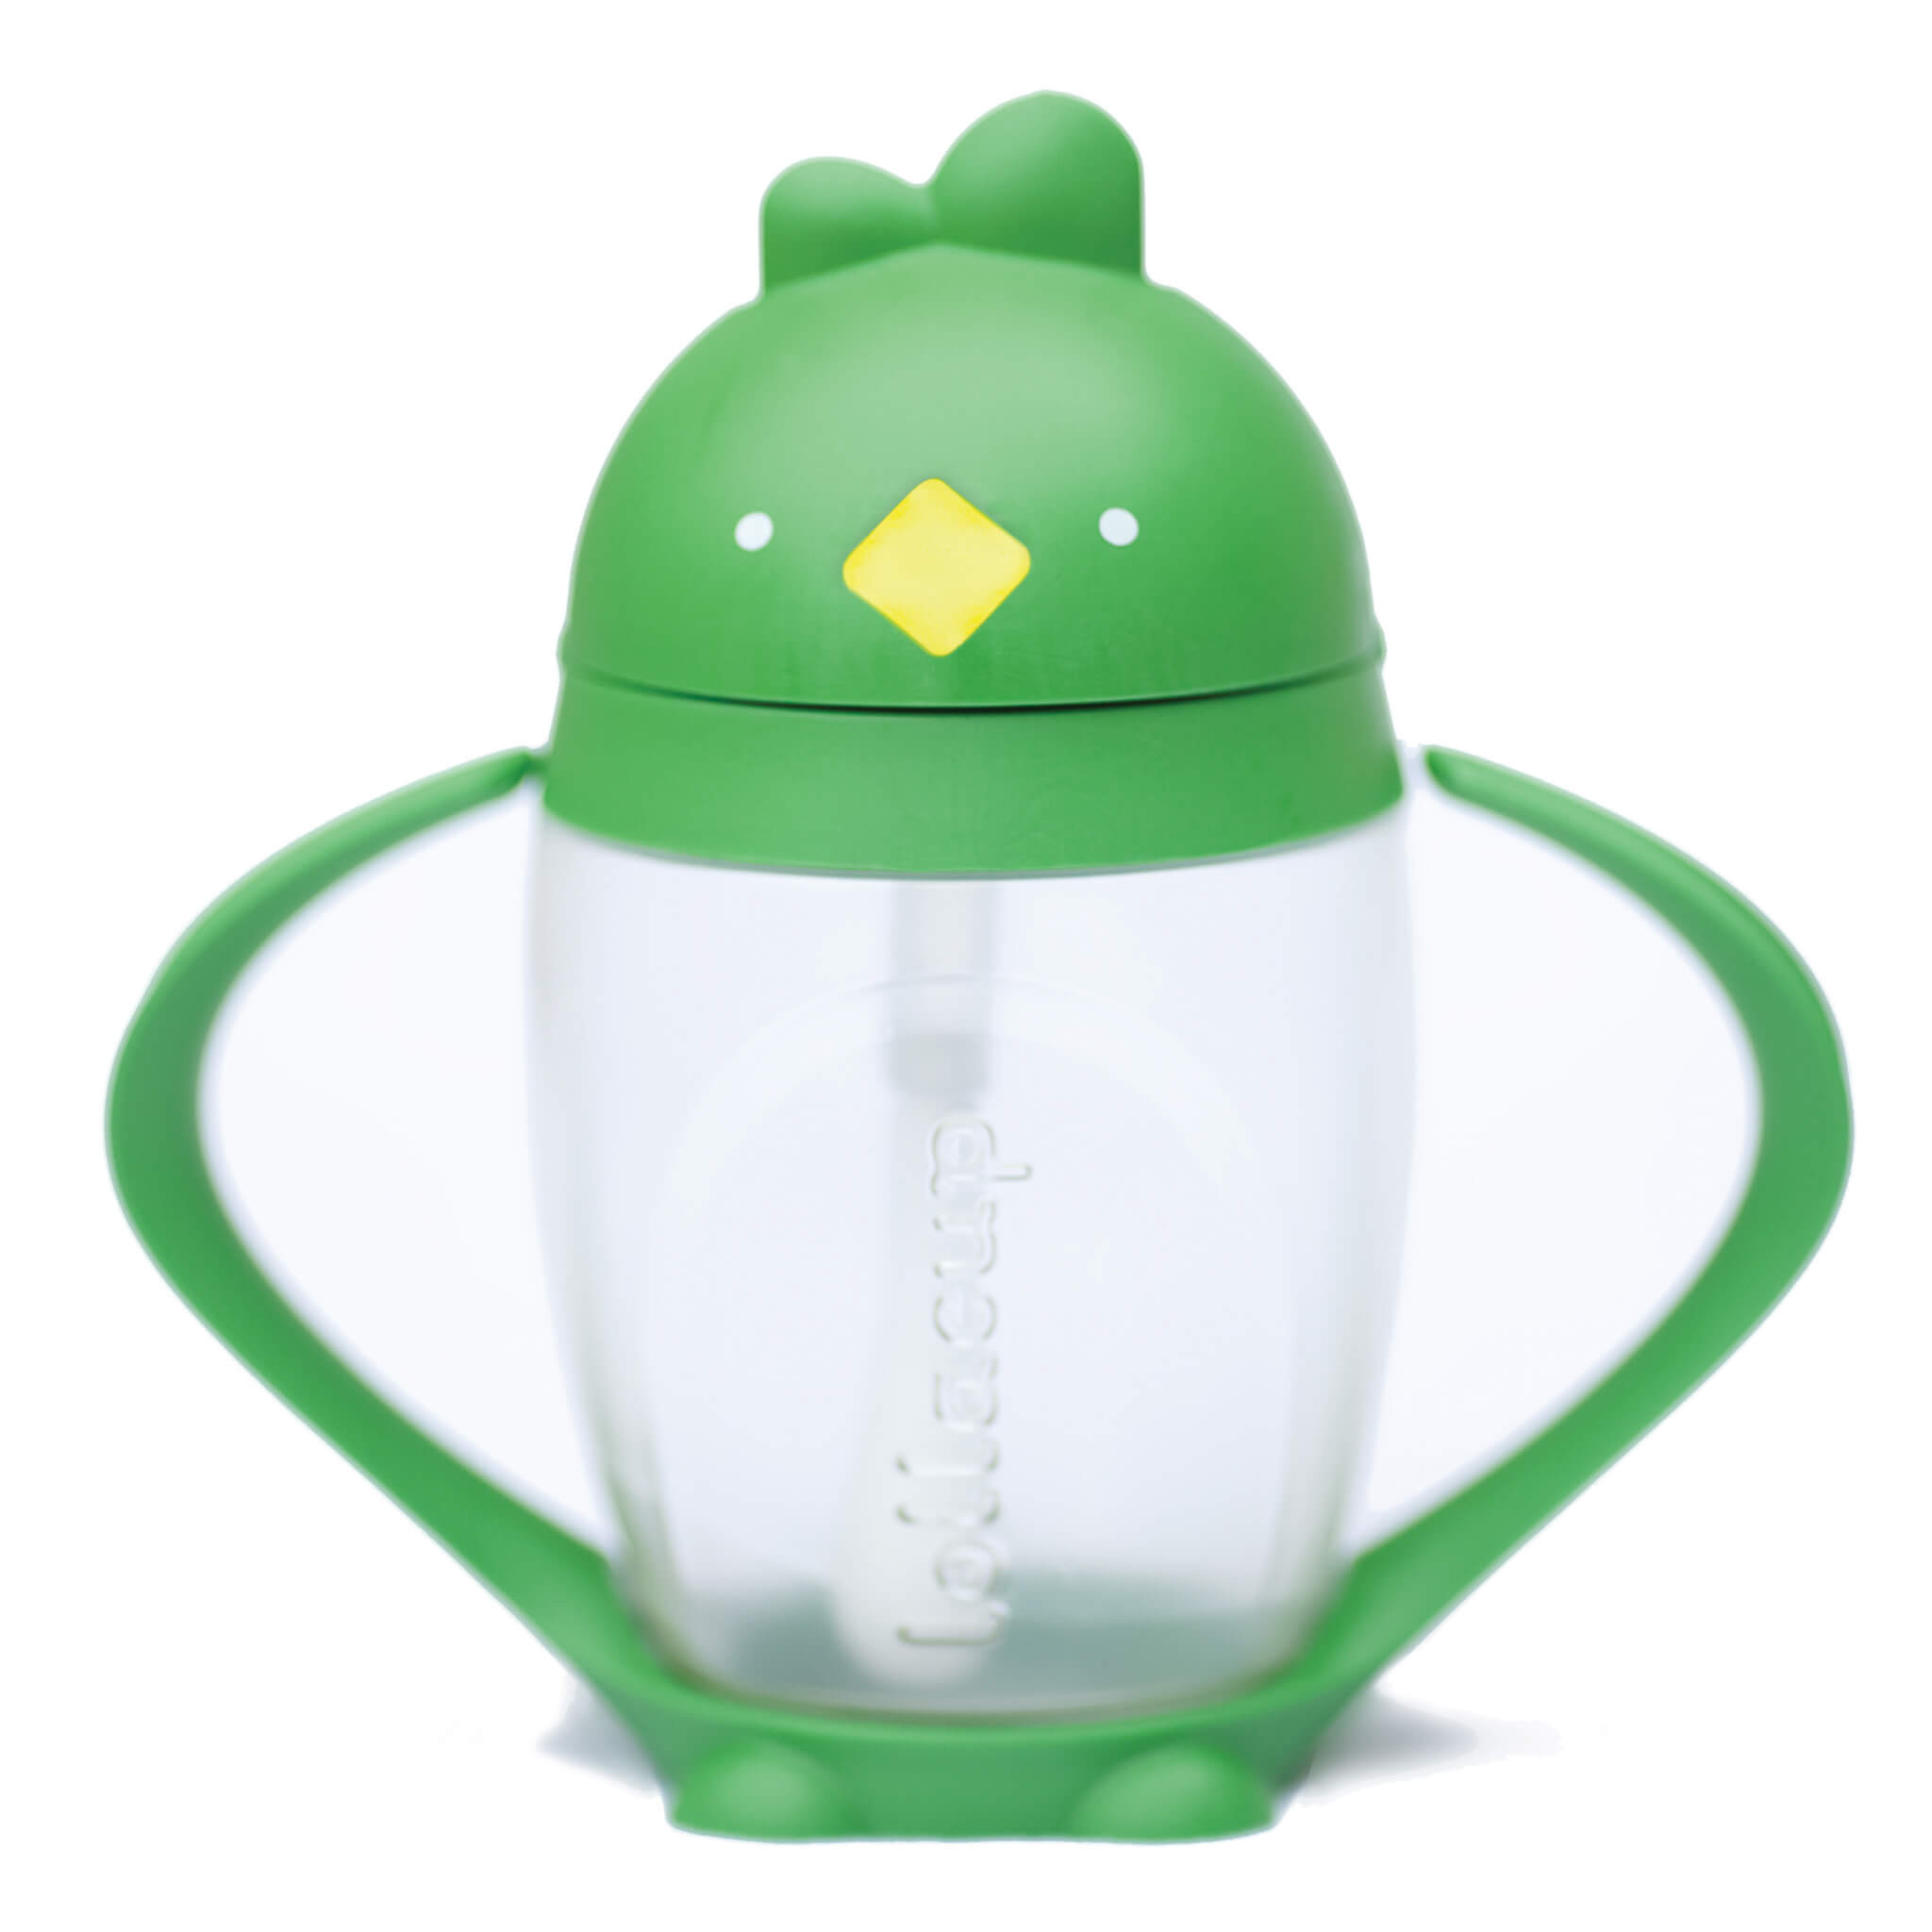 Lollaland Good Green Lollacup Toddler Straw Cup